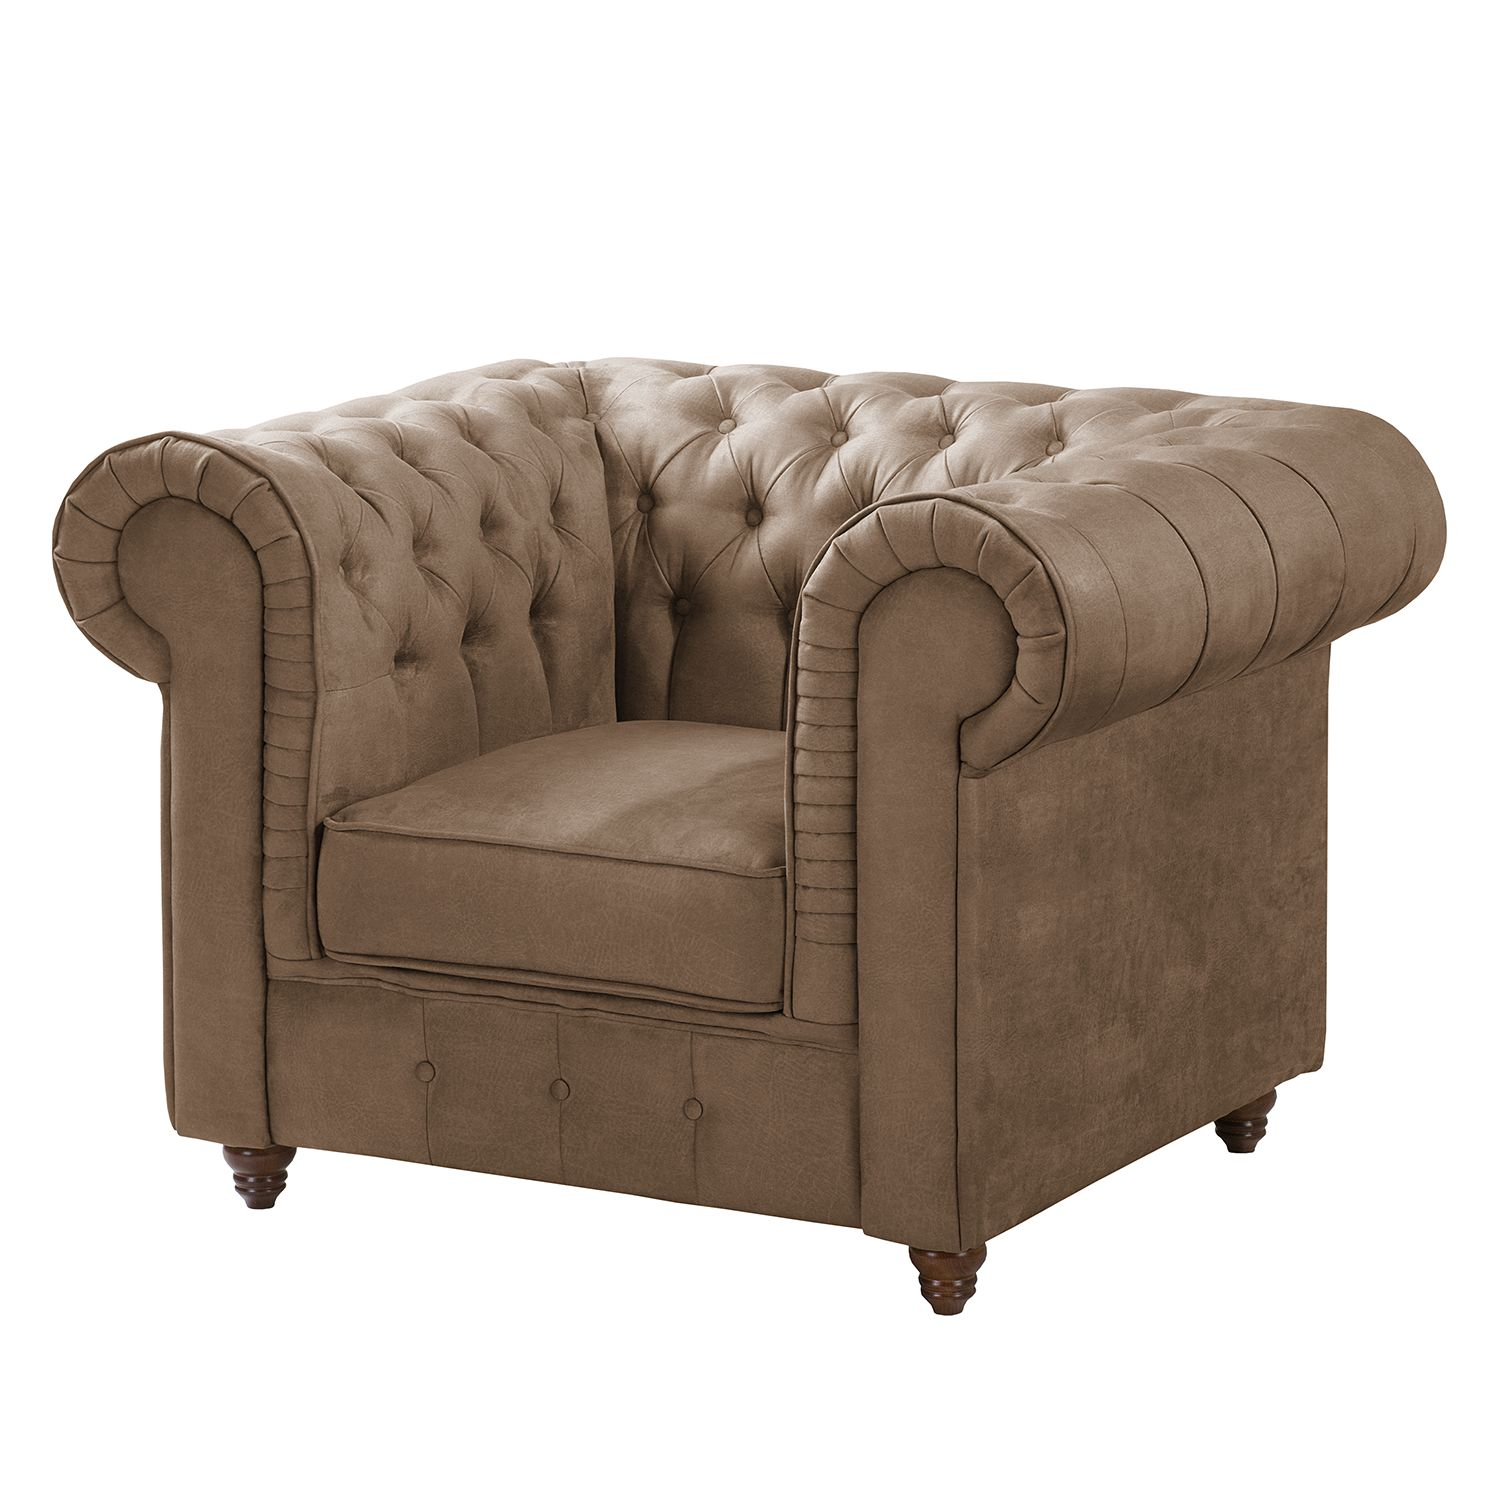 Sessel Samt Lila Home24 Chesterfield Sessel Pintano